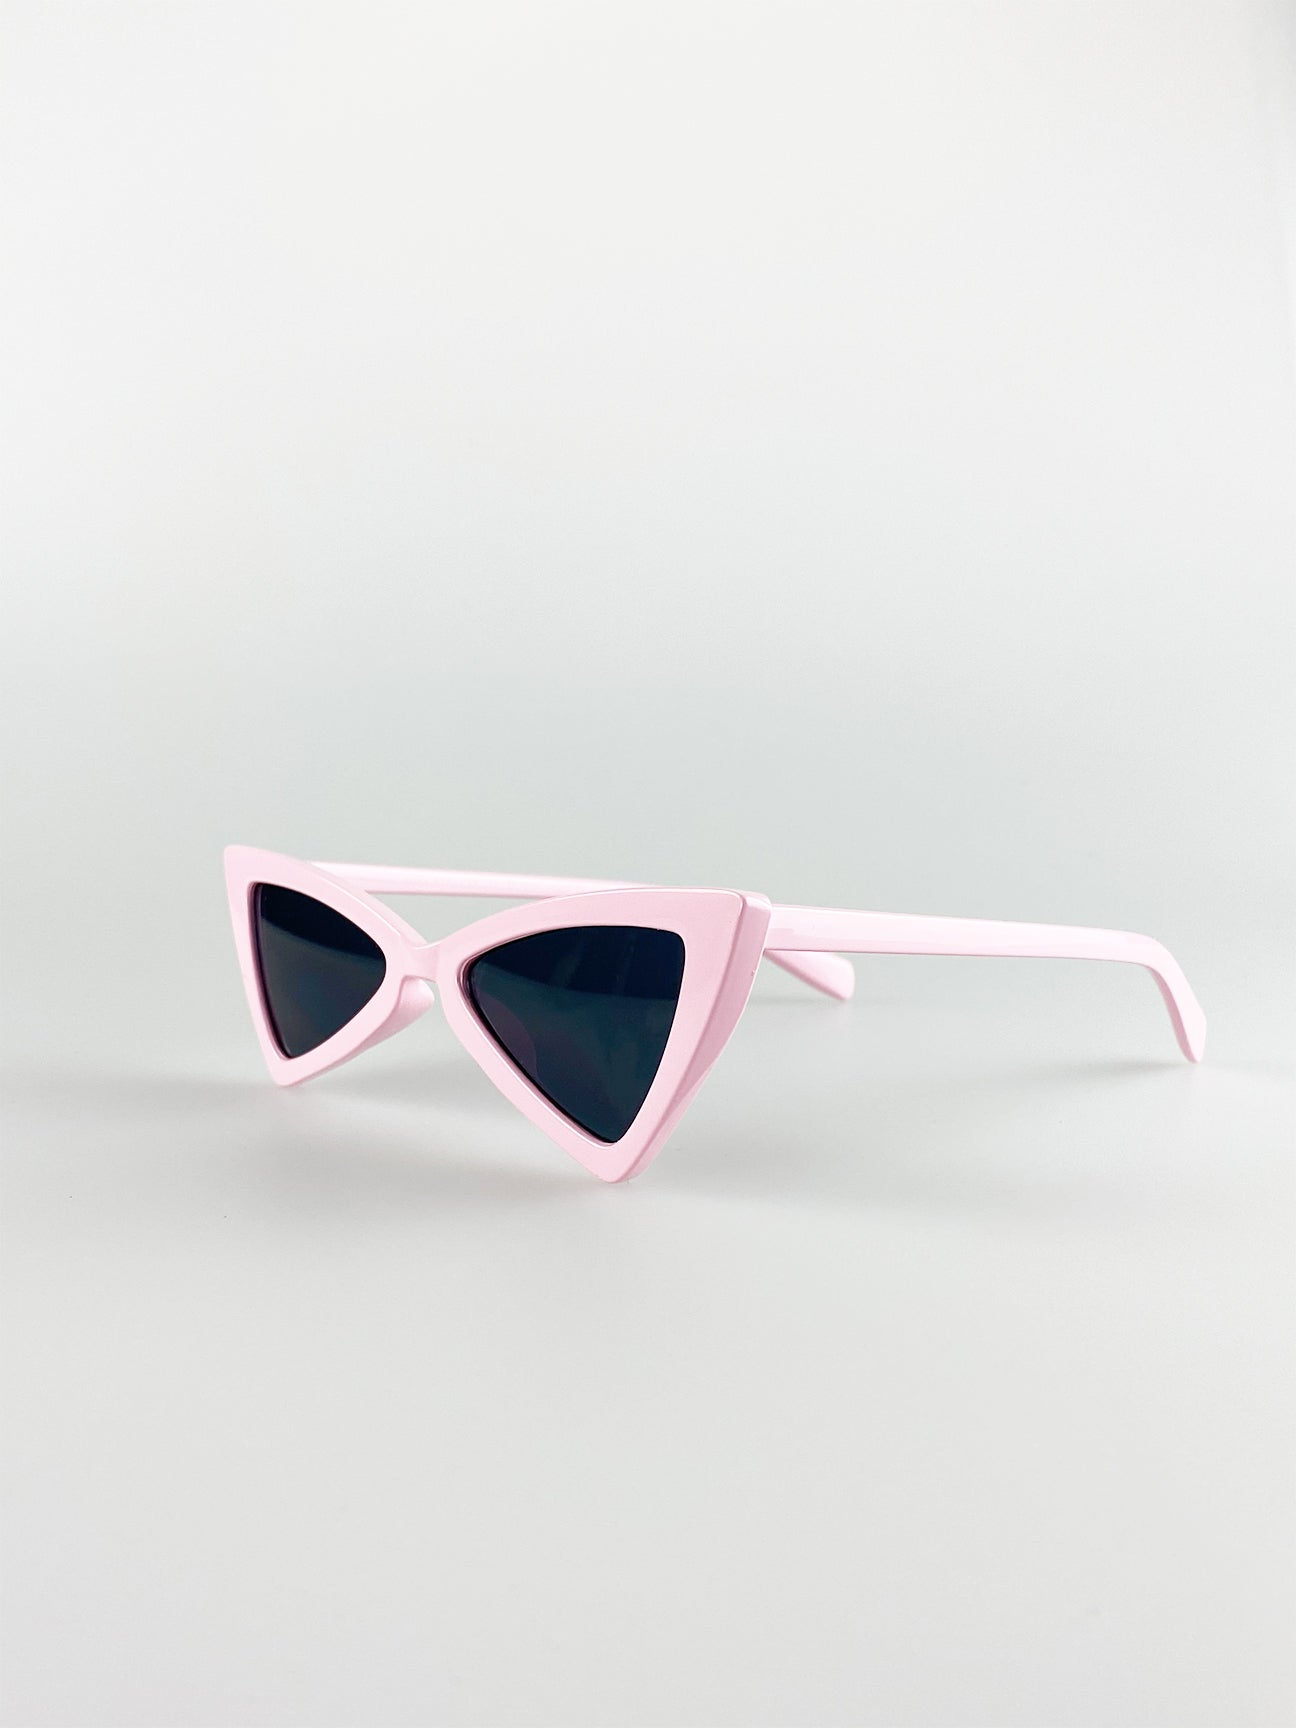 2 Pack Angled Cateye Sunglasses In Pink And Black